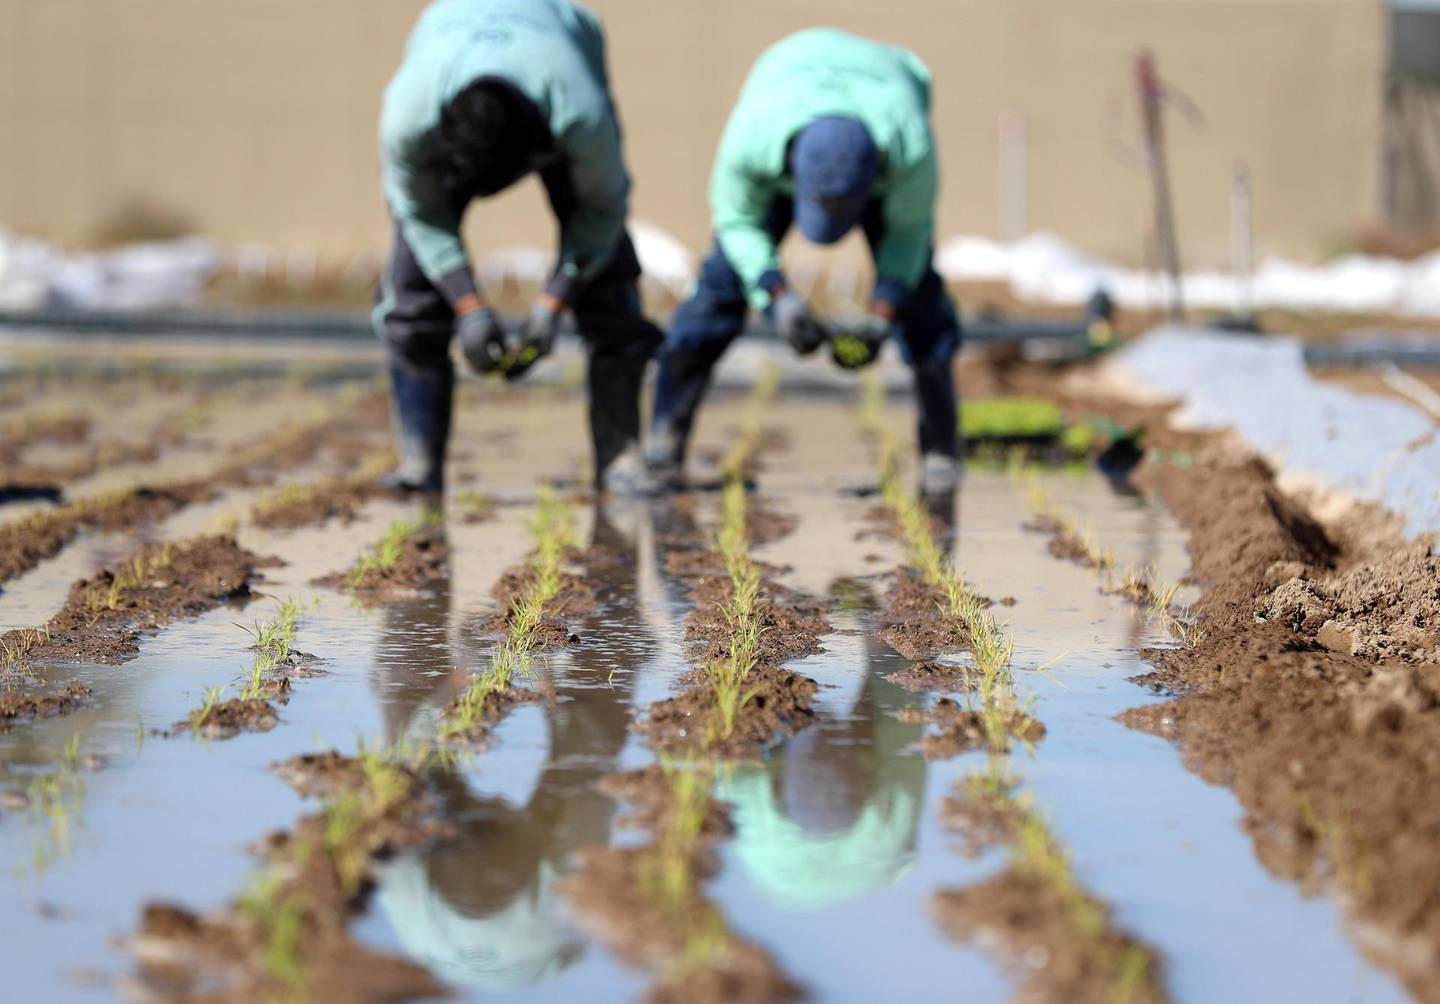 Sharjah, United Arab Emirates - Reporter: Sarwat Nasir. News. Food. People transplant rice plants at a rice farm, as part of research by the ministry to enhance UAEÕs food security. Sharjah. Monday, January 11th, 2021. Chris Whiteoak / The National